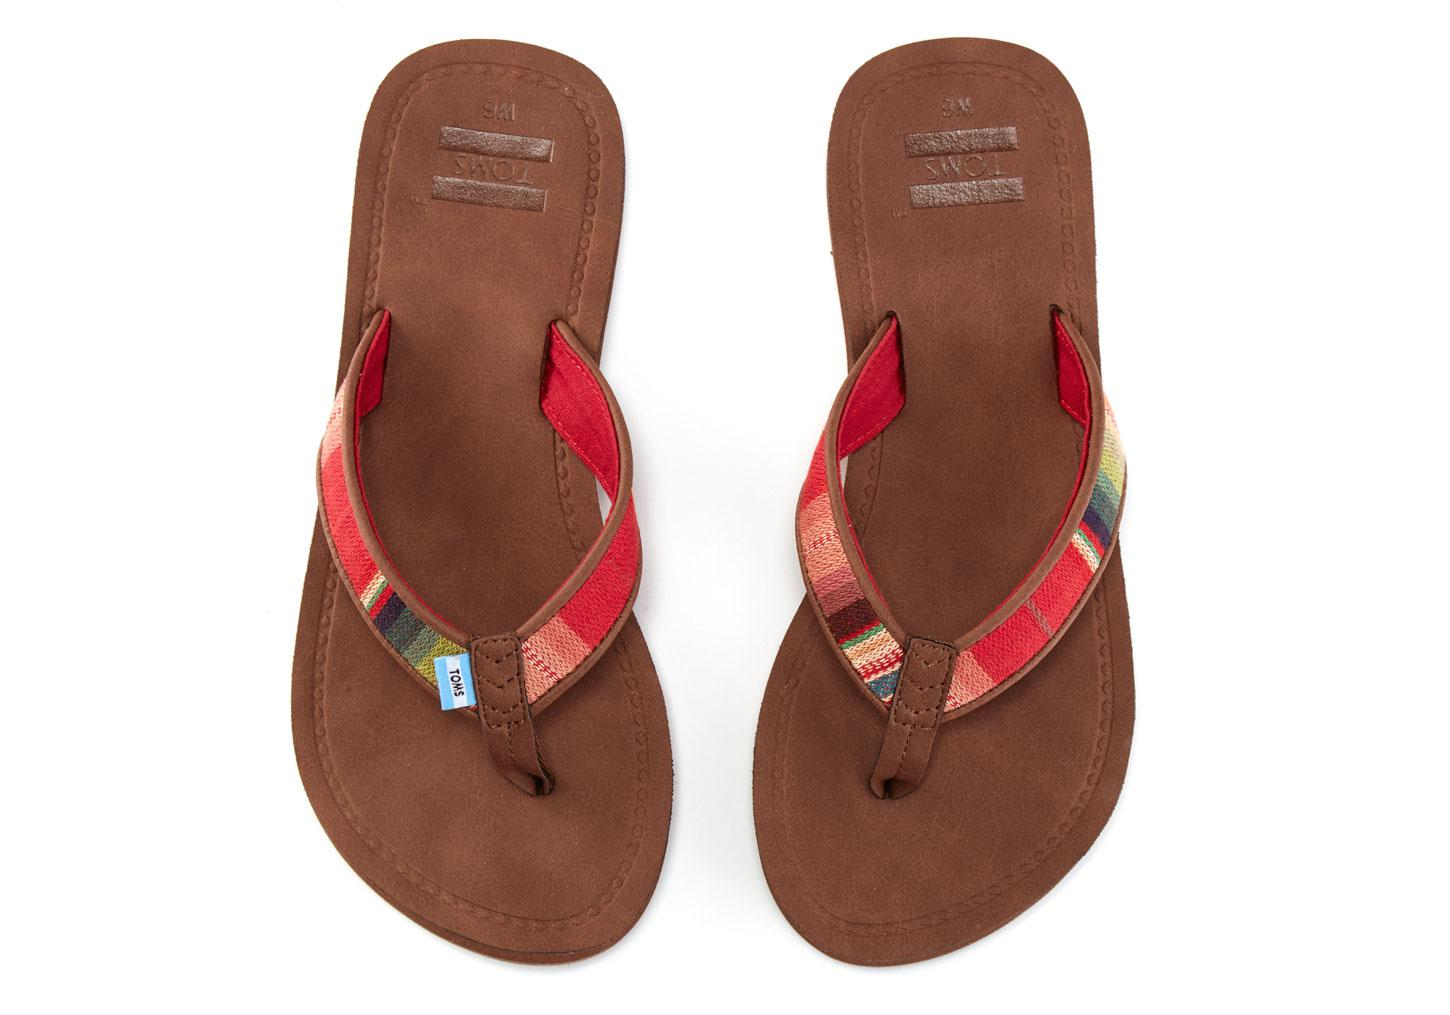 6503d4083544 Lyst - TOMS Brown Multi Textile Women s Solana Flip-flops in Red